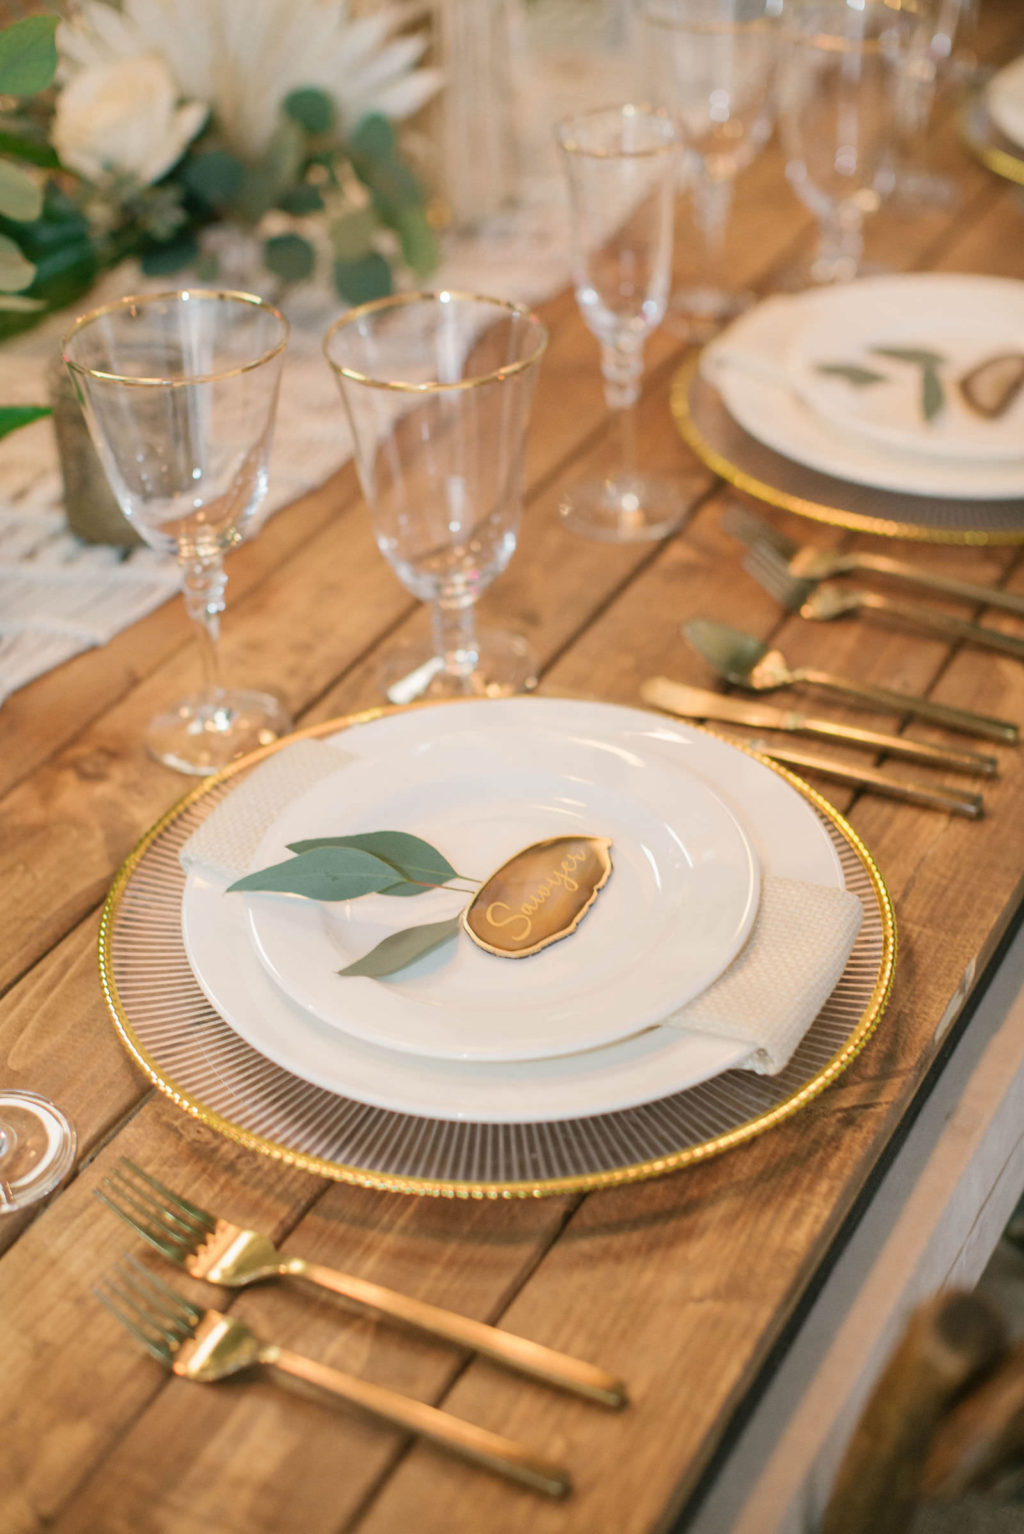 Boho Modern Gold and White Charger with Eucalyptus Greenery Name Card and Golf Flatware on Wooden Feasting Table | Reception Table Decor Ideas | Styled With Love at St. Pete Beach Wedding Venue Bellwether Beach Resort